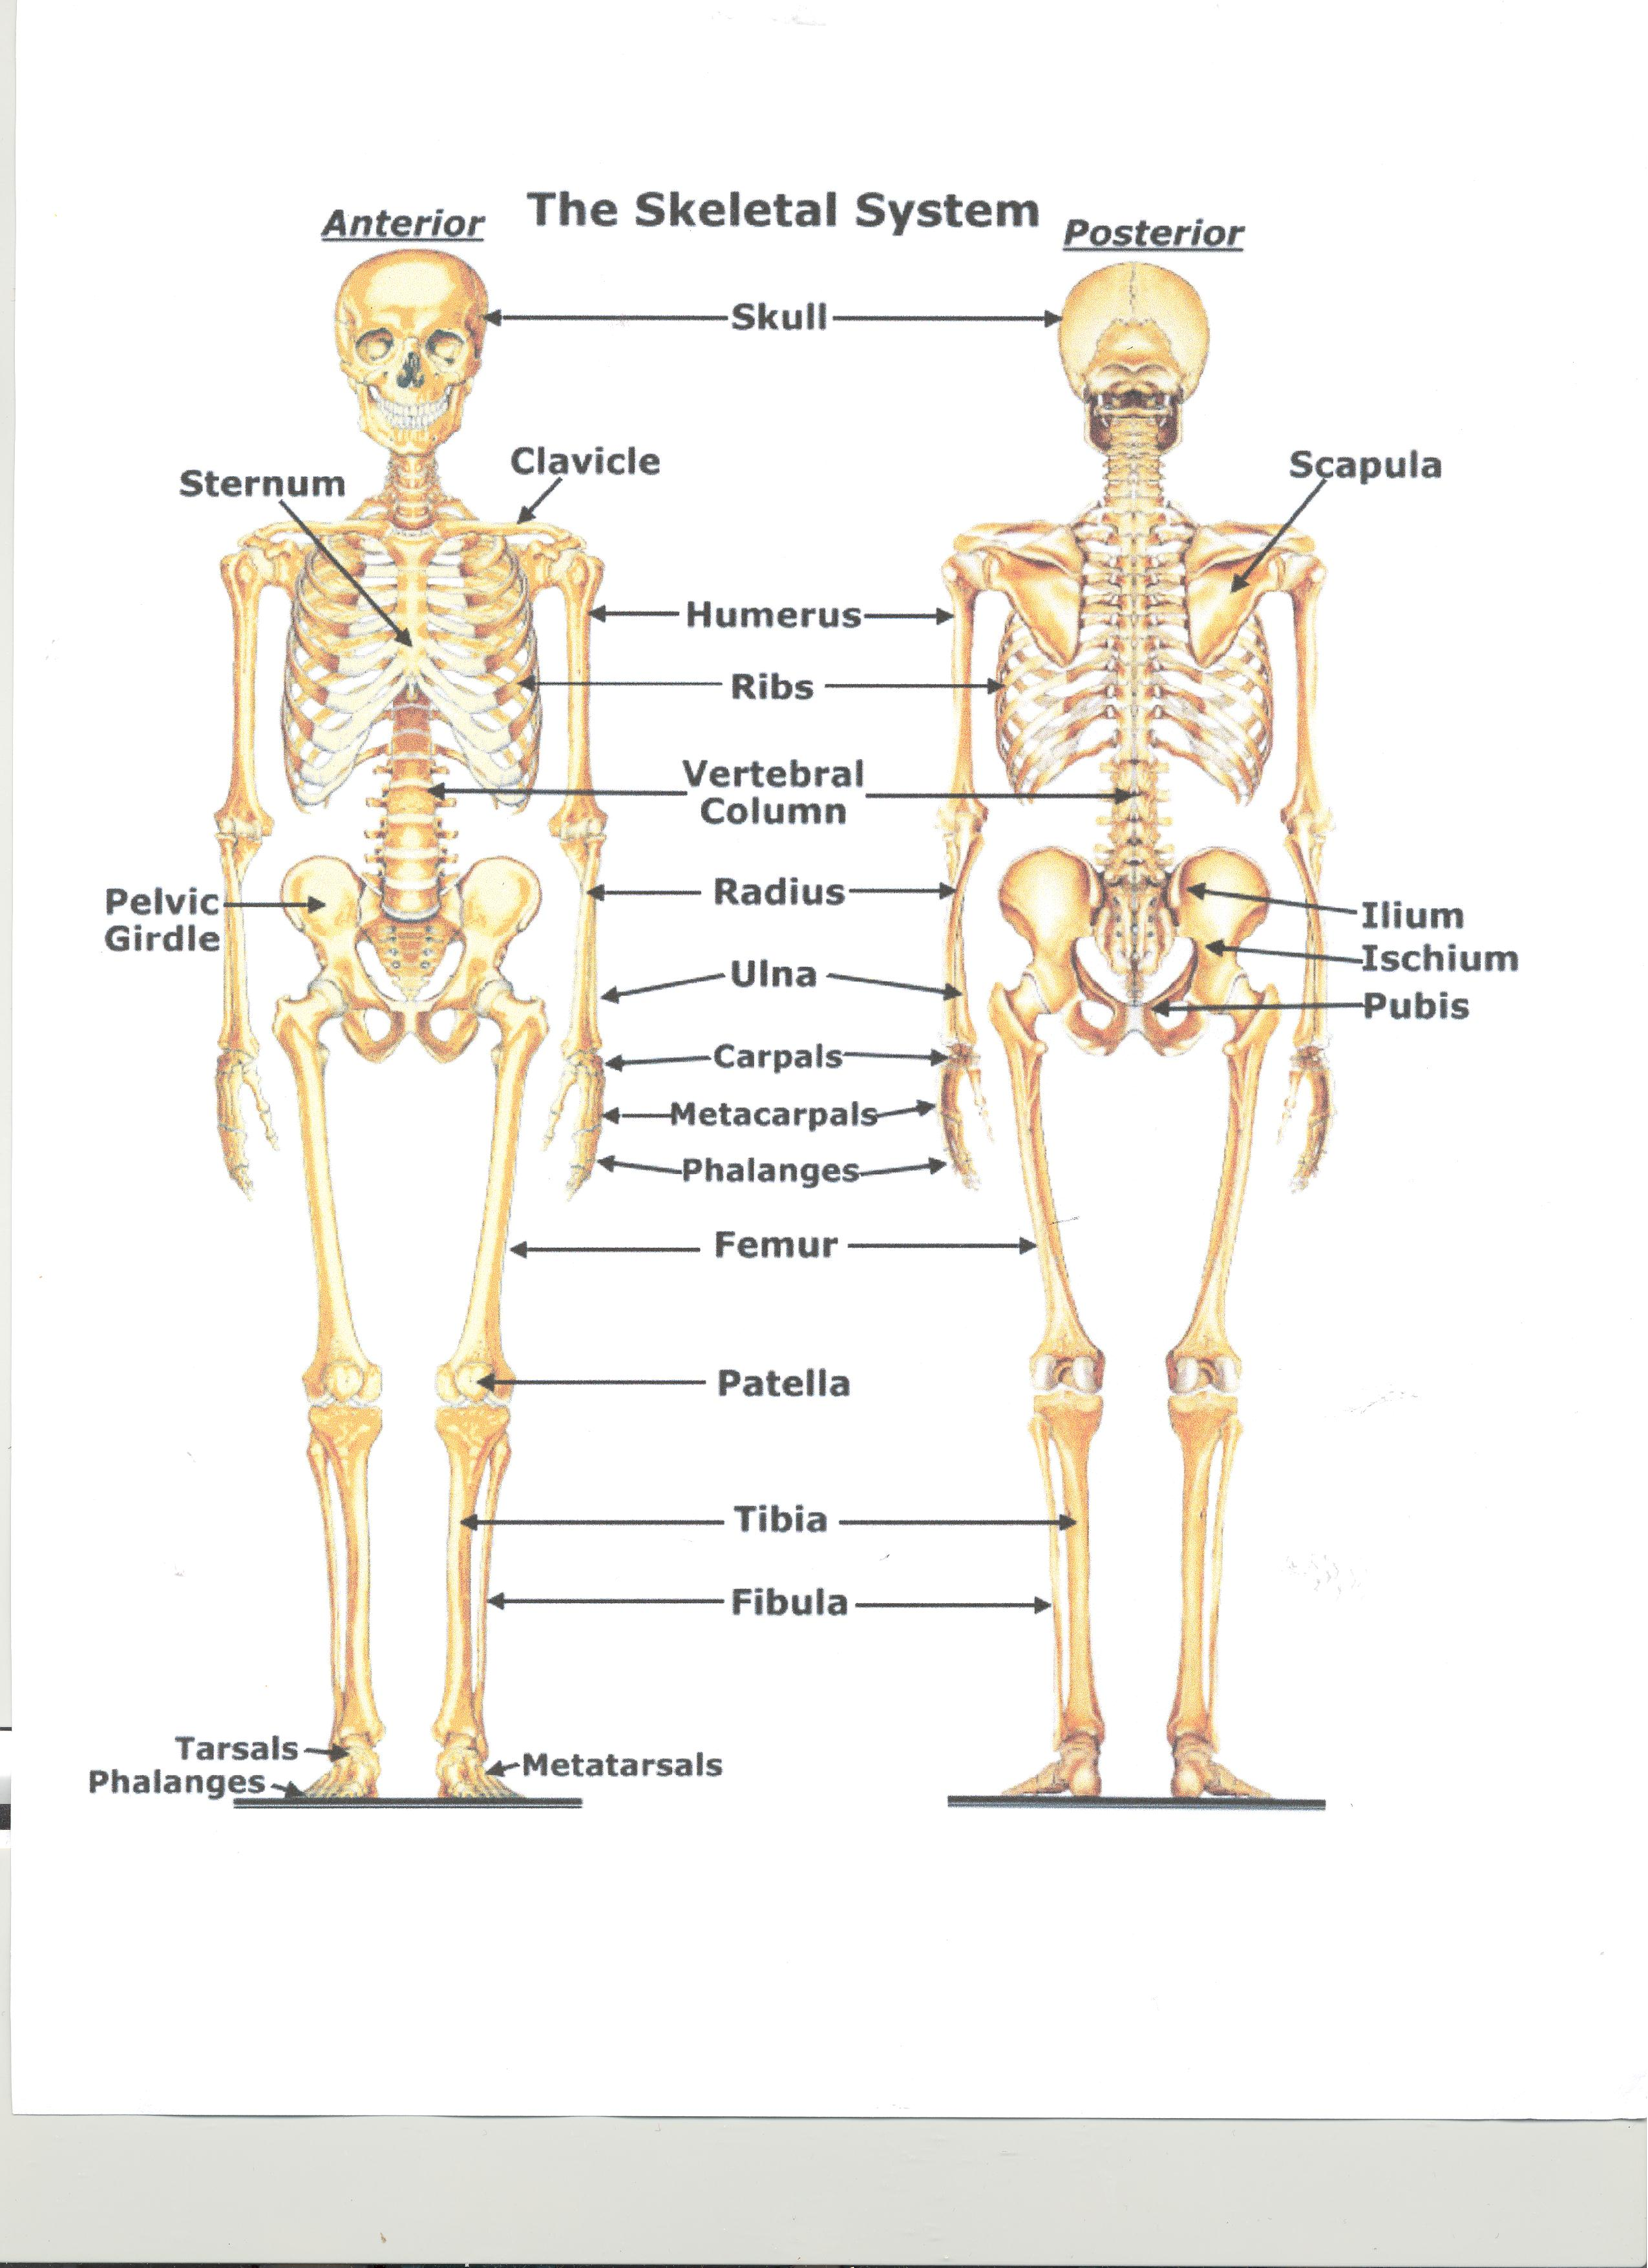 The Skeletal System By Brexten And Dominic